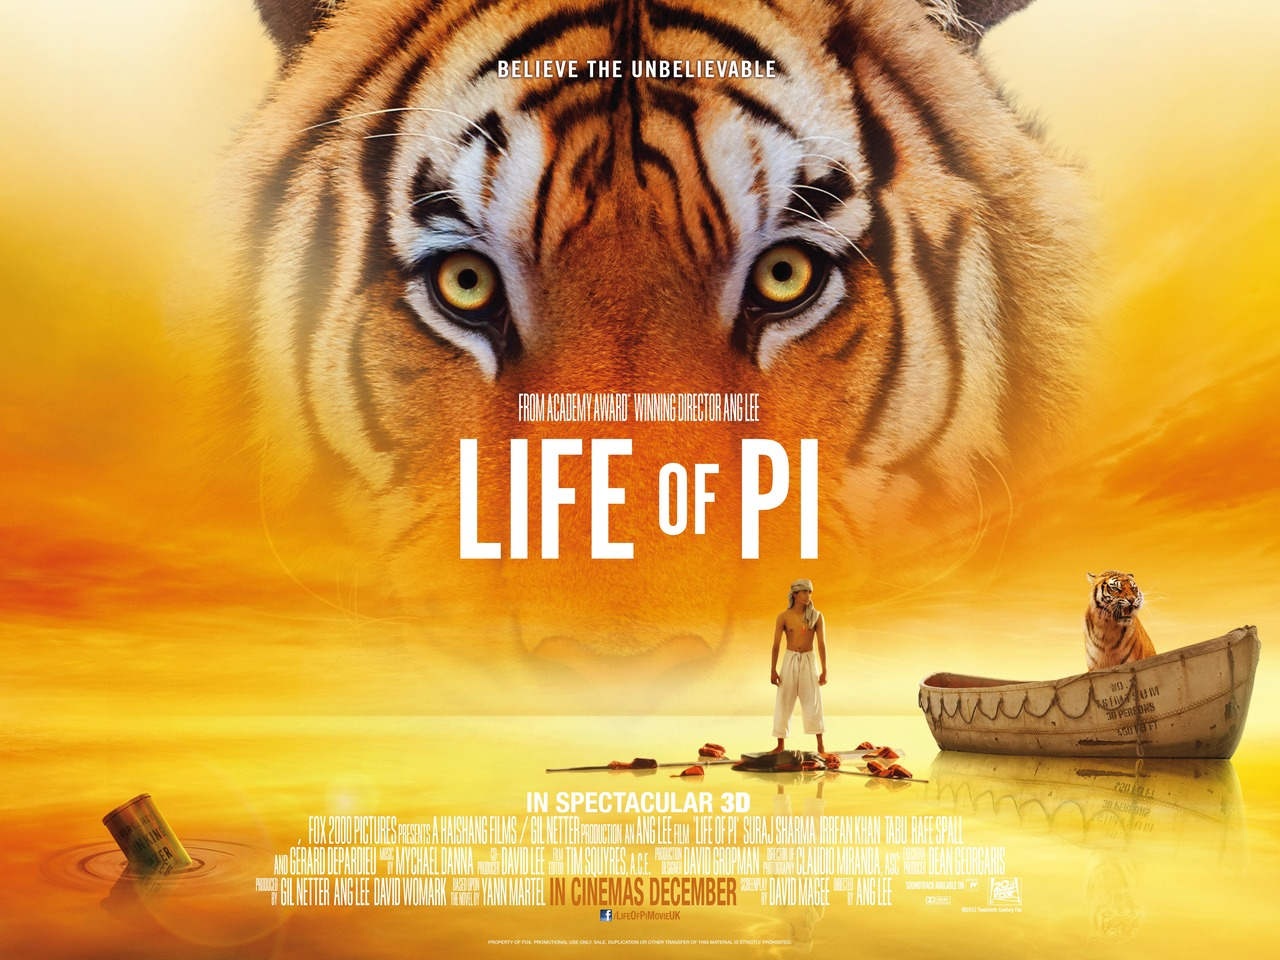 Life of pi read the book watch the movie ethology for Life of pi ending